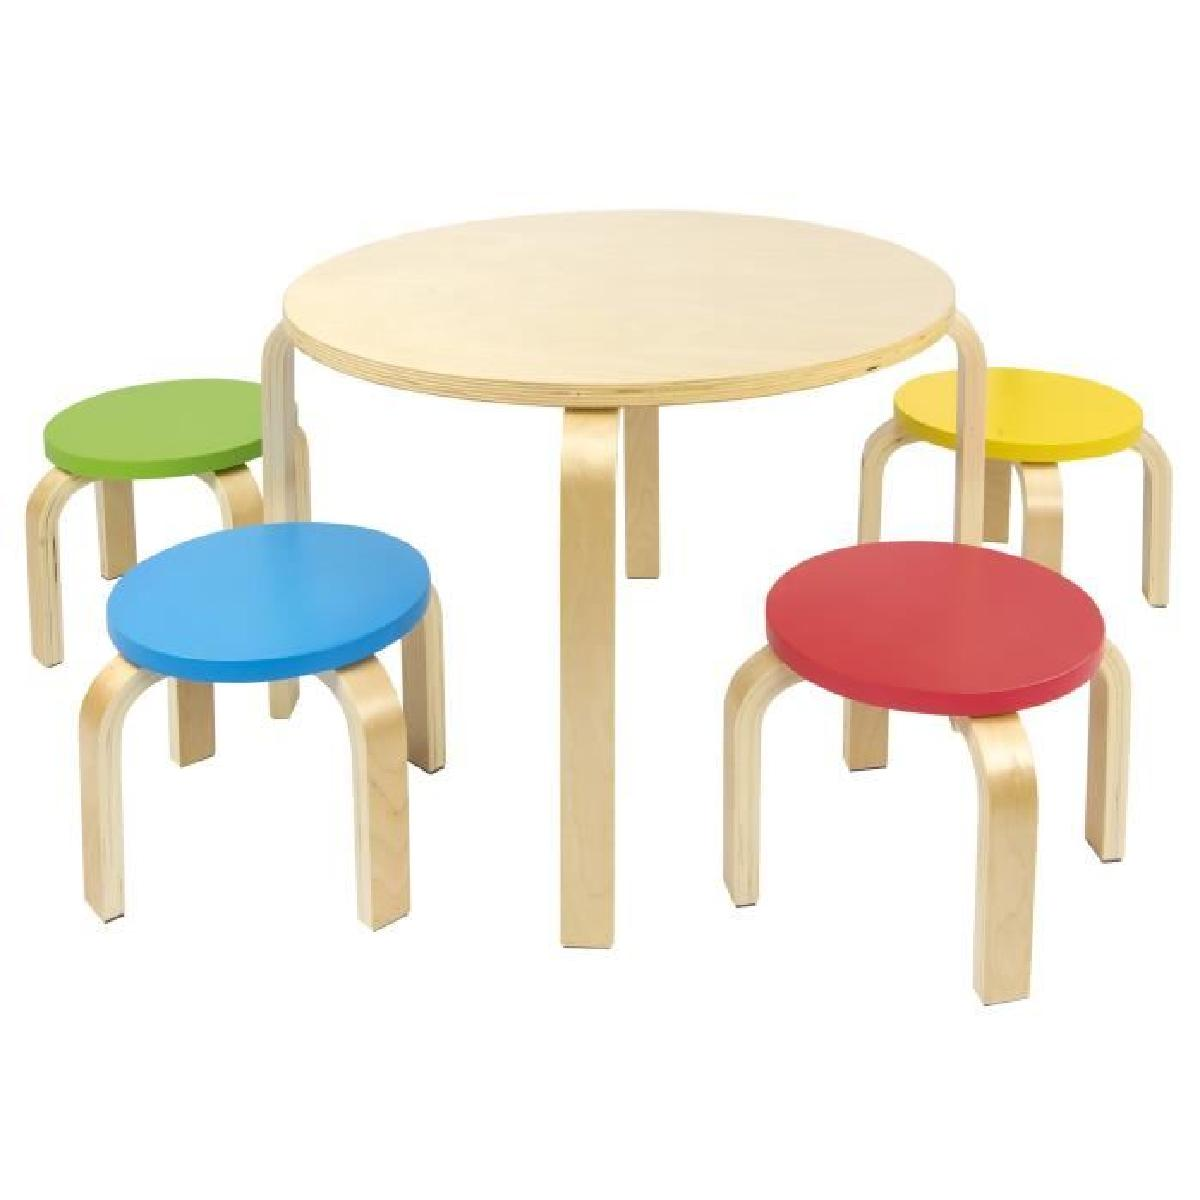 Table chaise enfant pas cher pi ti li - Table chaise enfant ikea ...